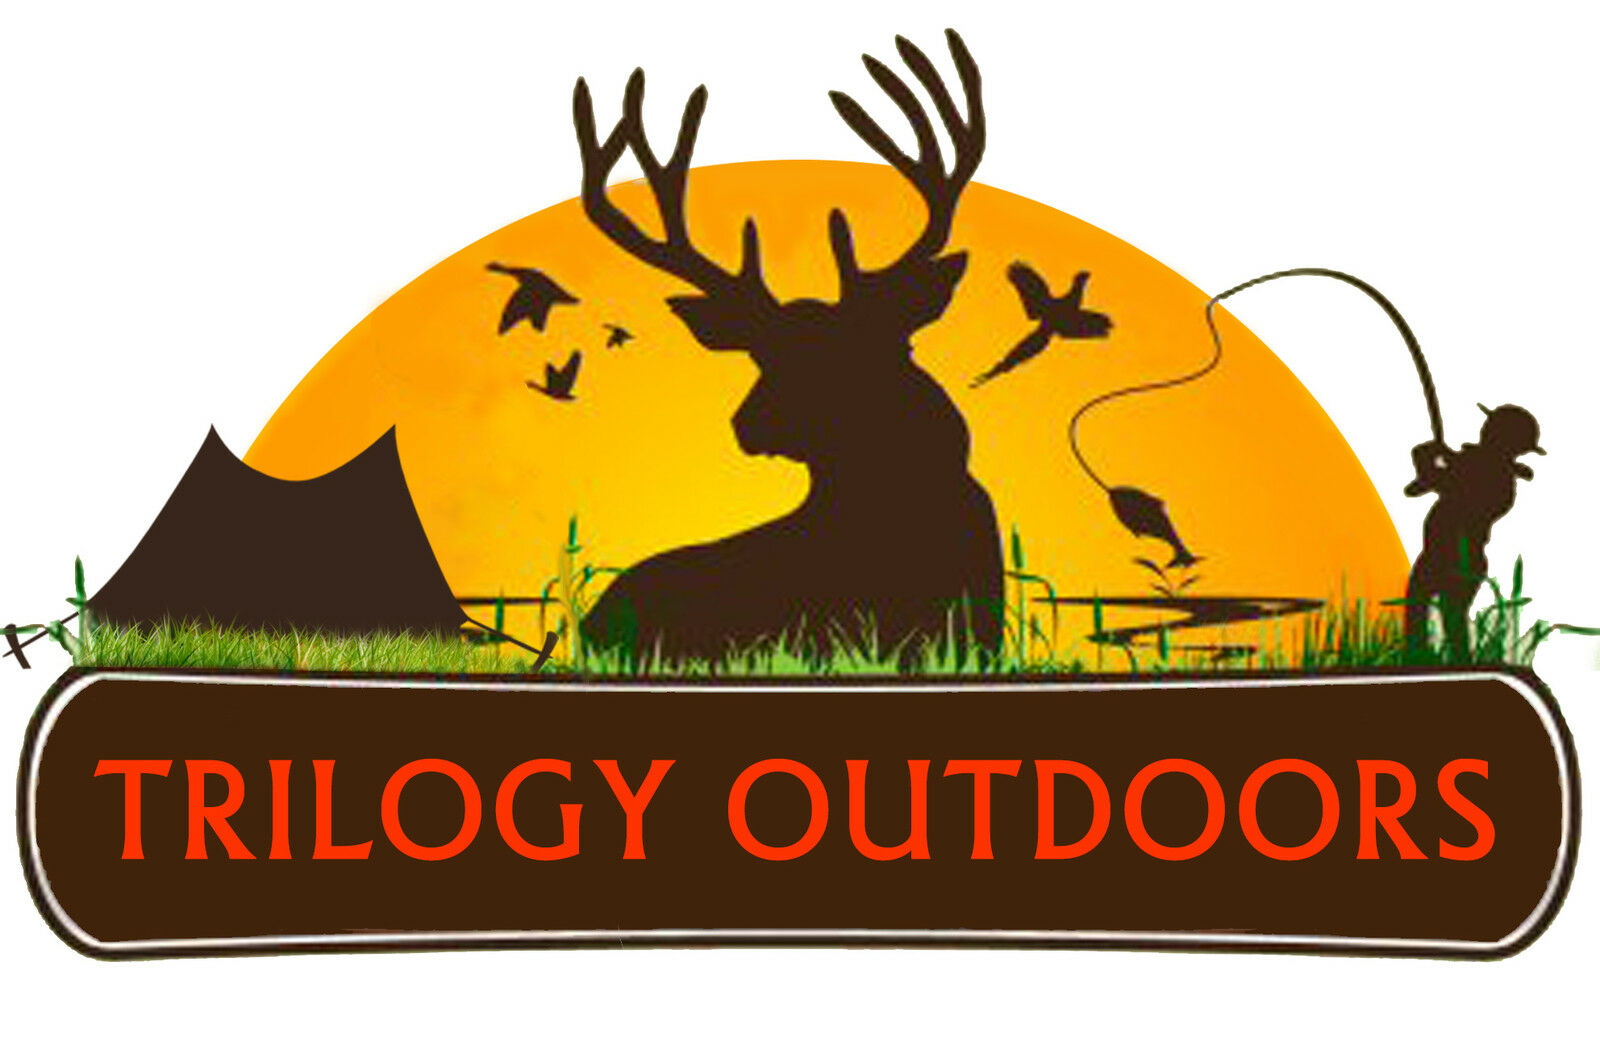 Trilogy Outdoors Inc.